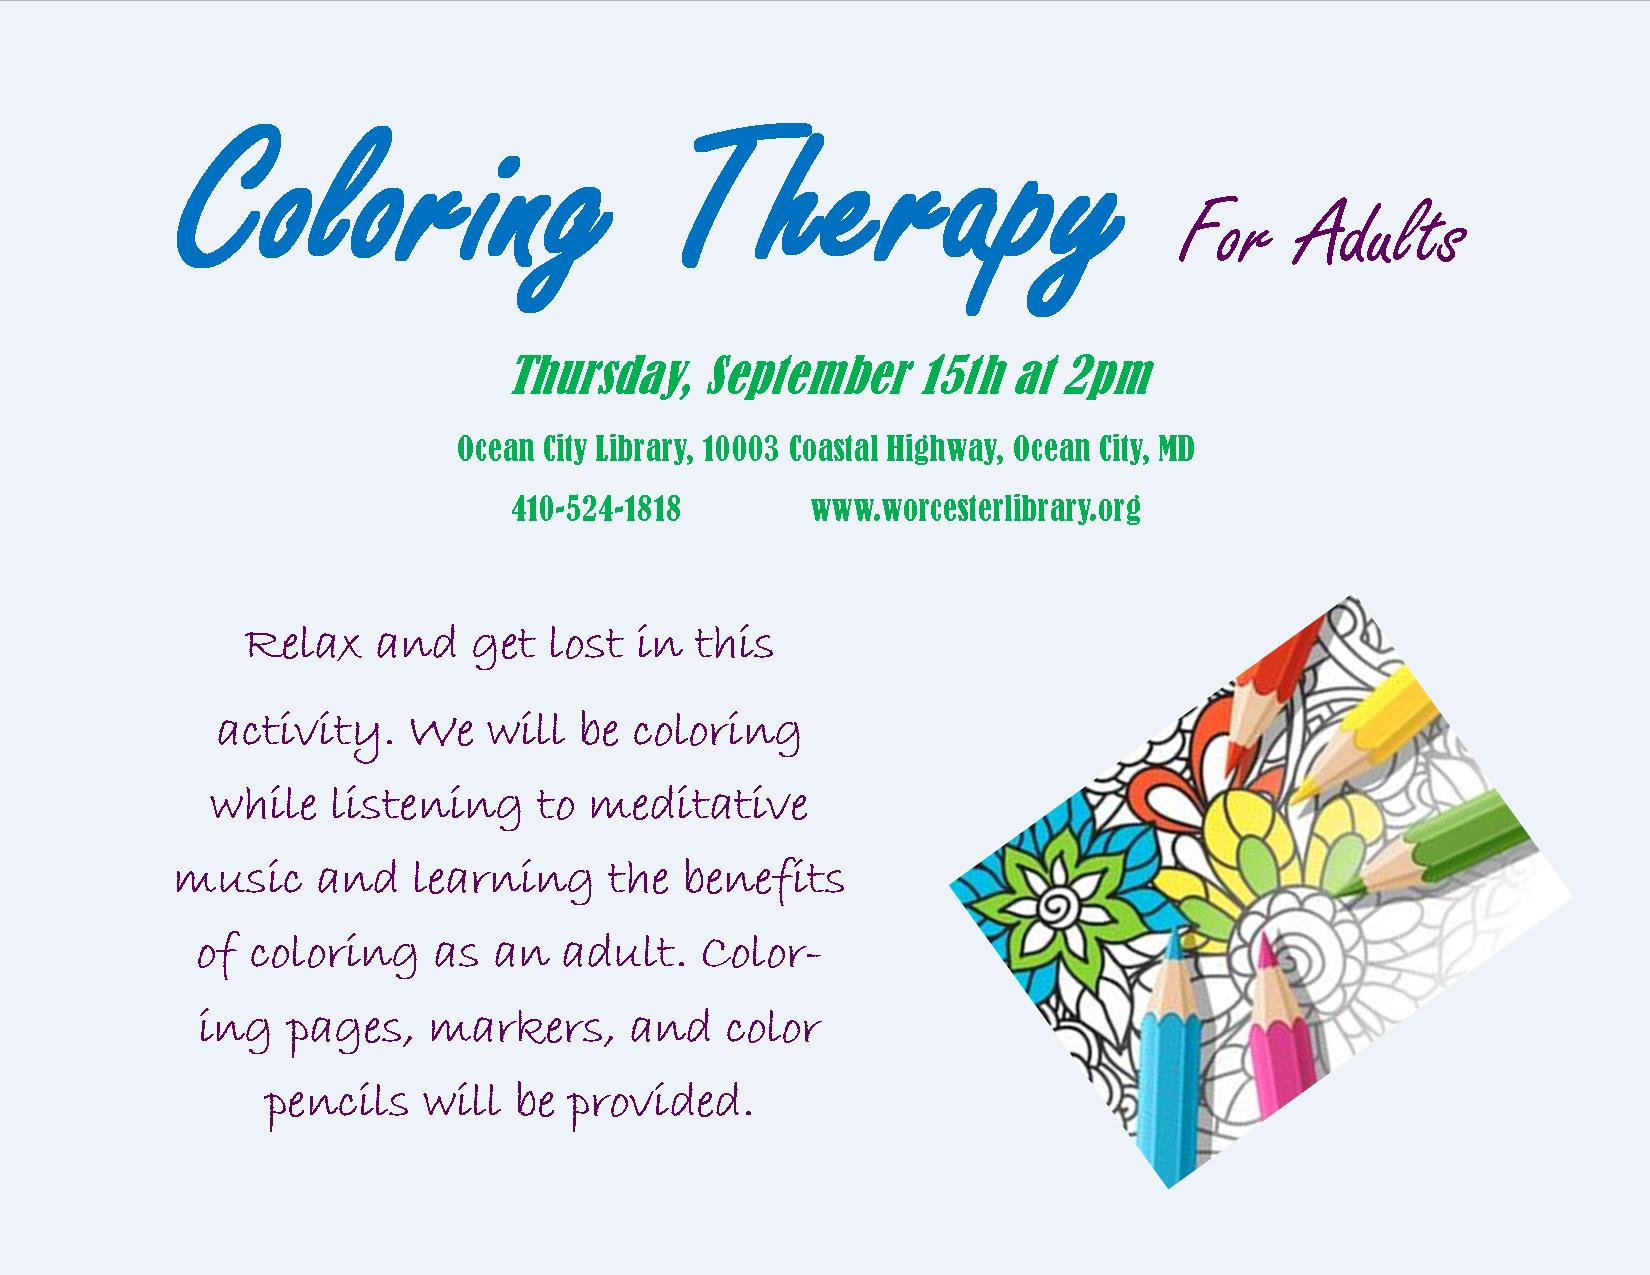 Coloring Therapy For Adults Program This Thursday At The Ocean City Library 2pm Free And No Registration Required All Supplies Provided Along With A